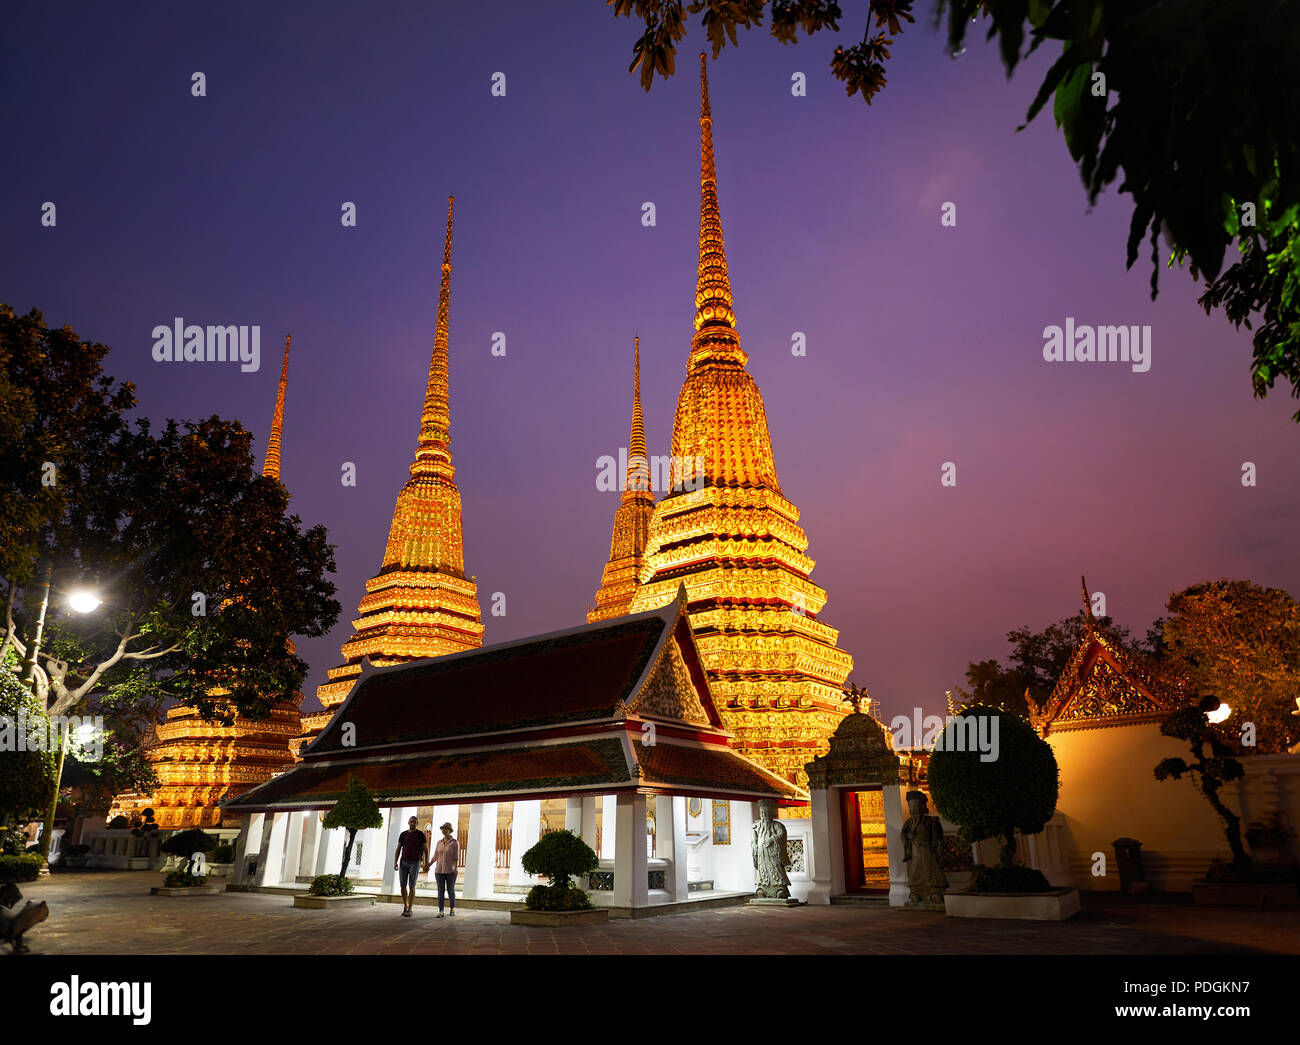 Young Couple in silhouette at Buddhist temple complex Wat Pho in Bangkok purple night sky in Thailand - Stock Image